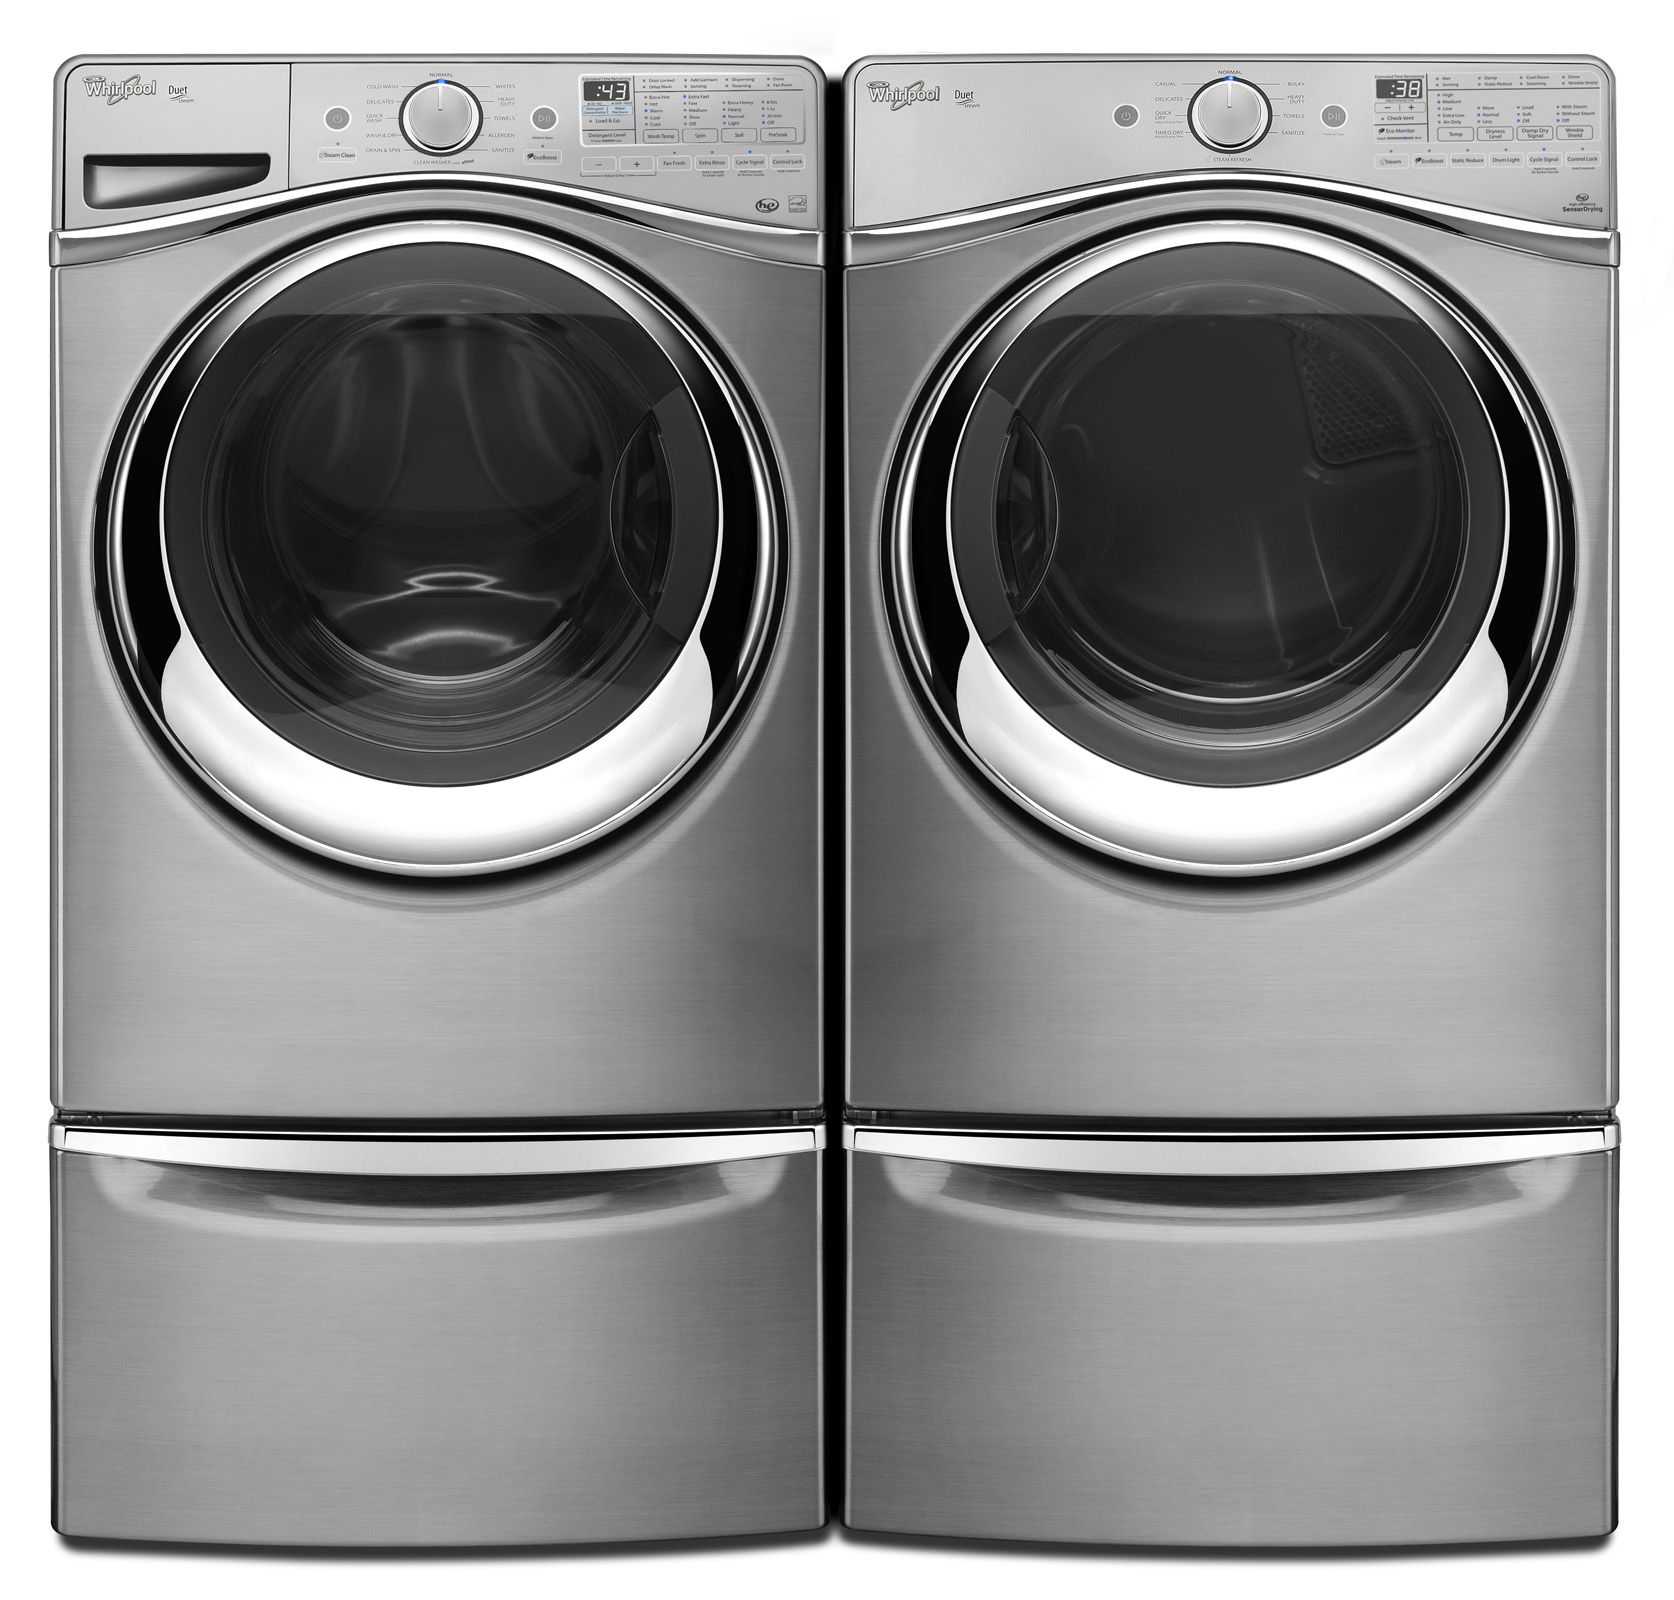 Whirlpool WFW97HEDU 4.5 cu. ft. Duet® Front-Load Washer w/ Load and Go System - Diamond Steel